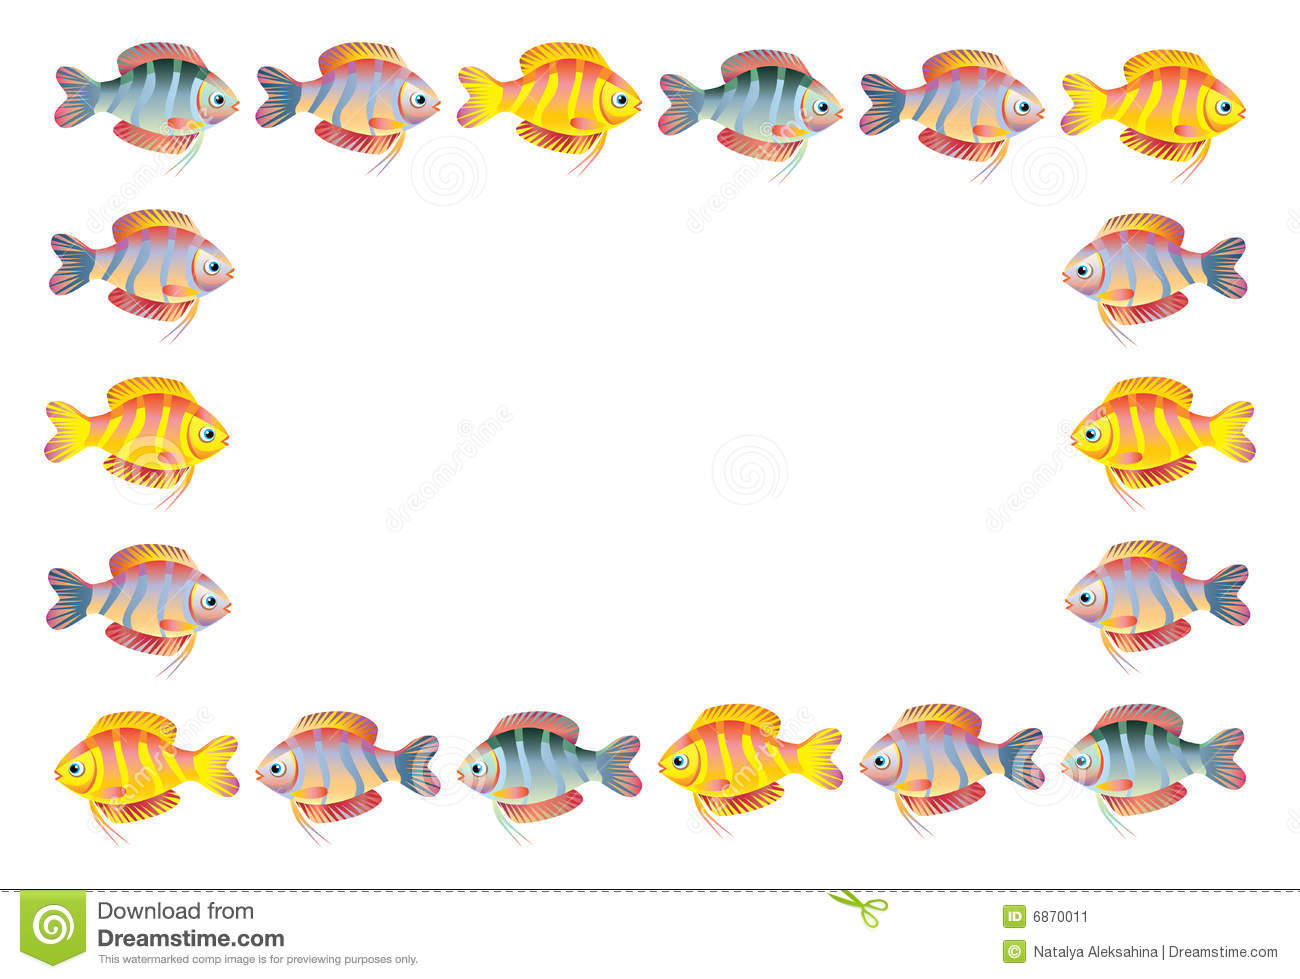 Cartoon fish frame stock vector. Illustration of white - 6870011